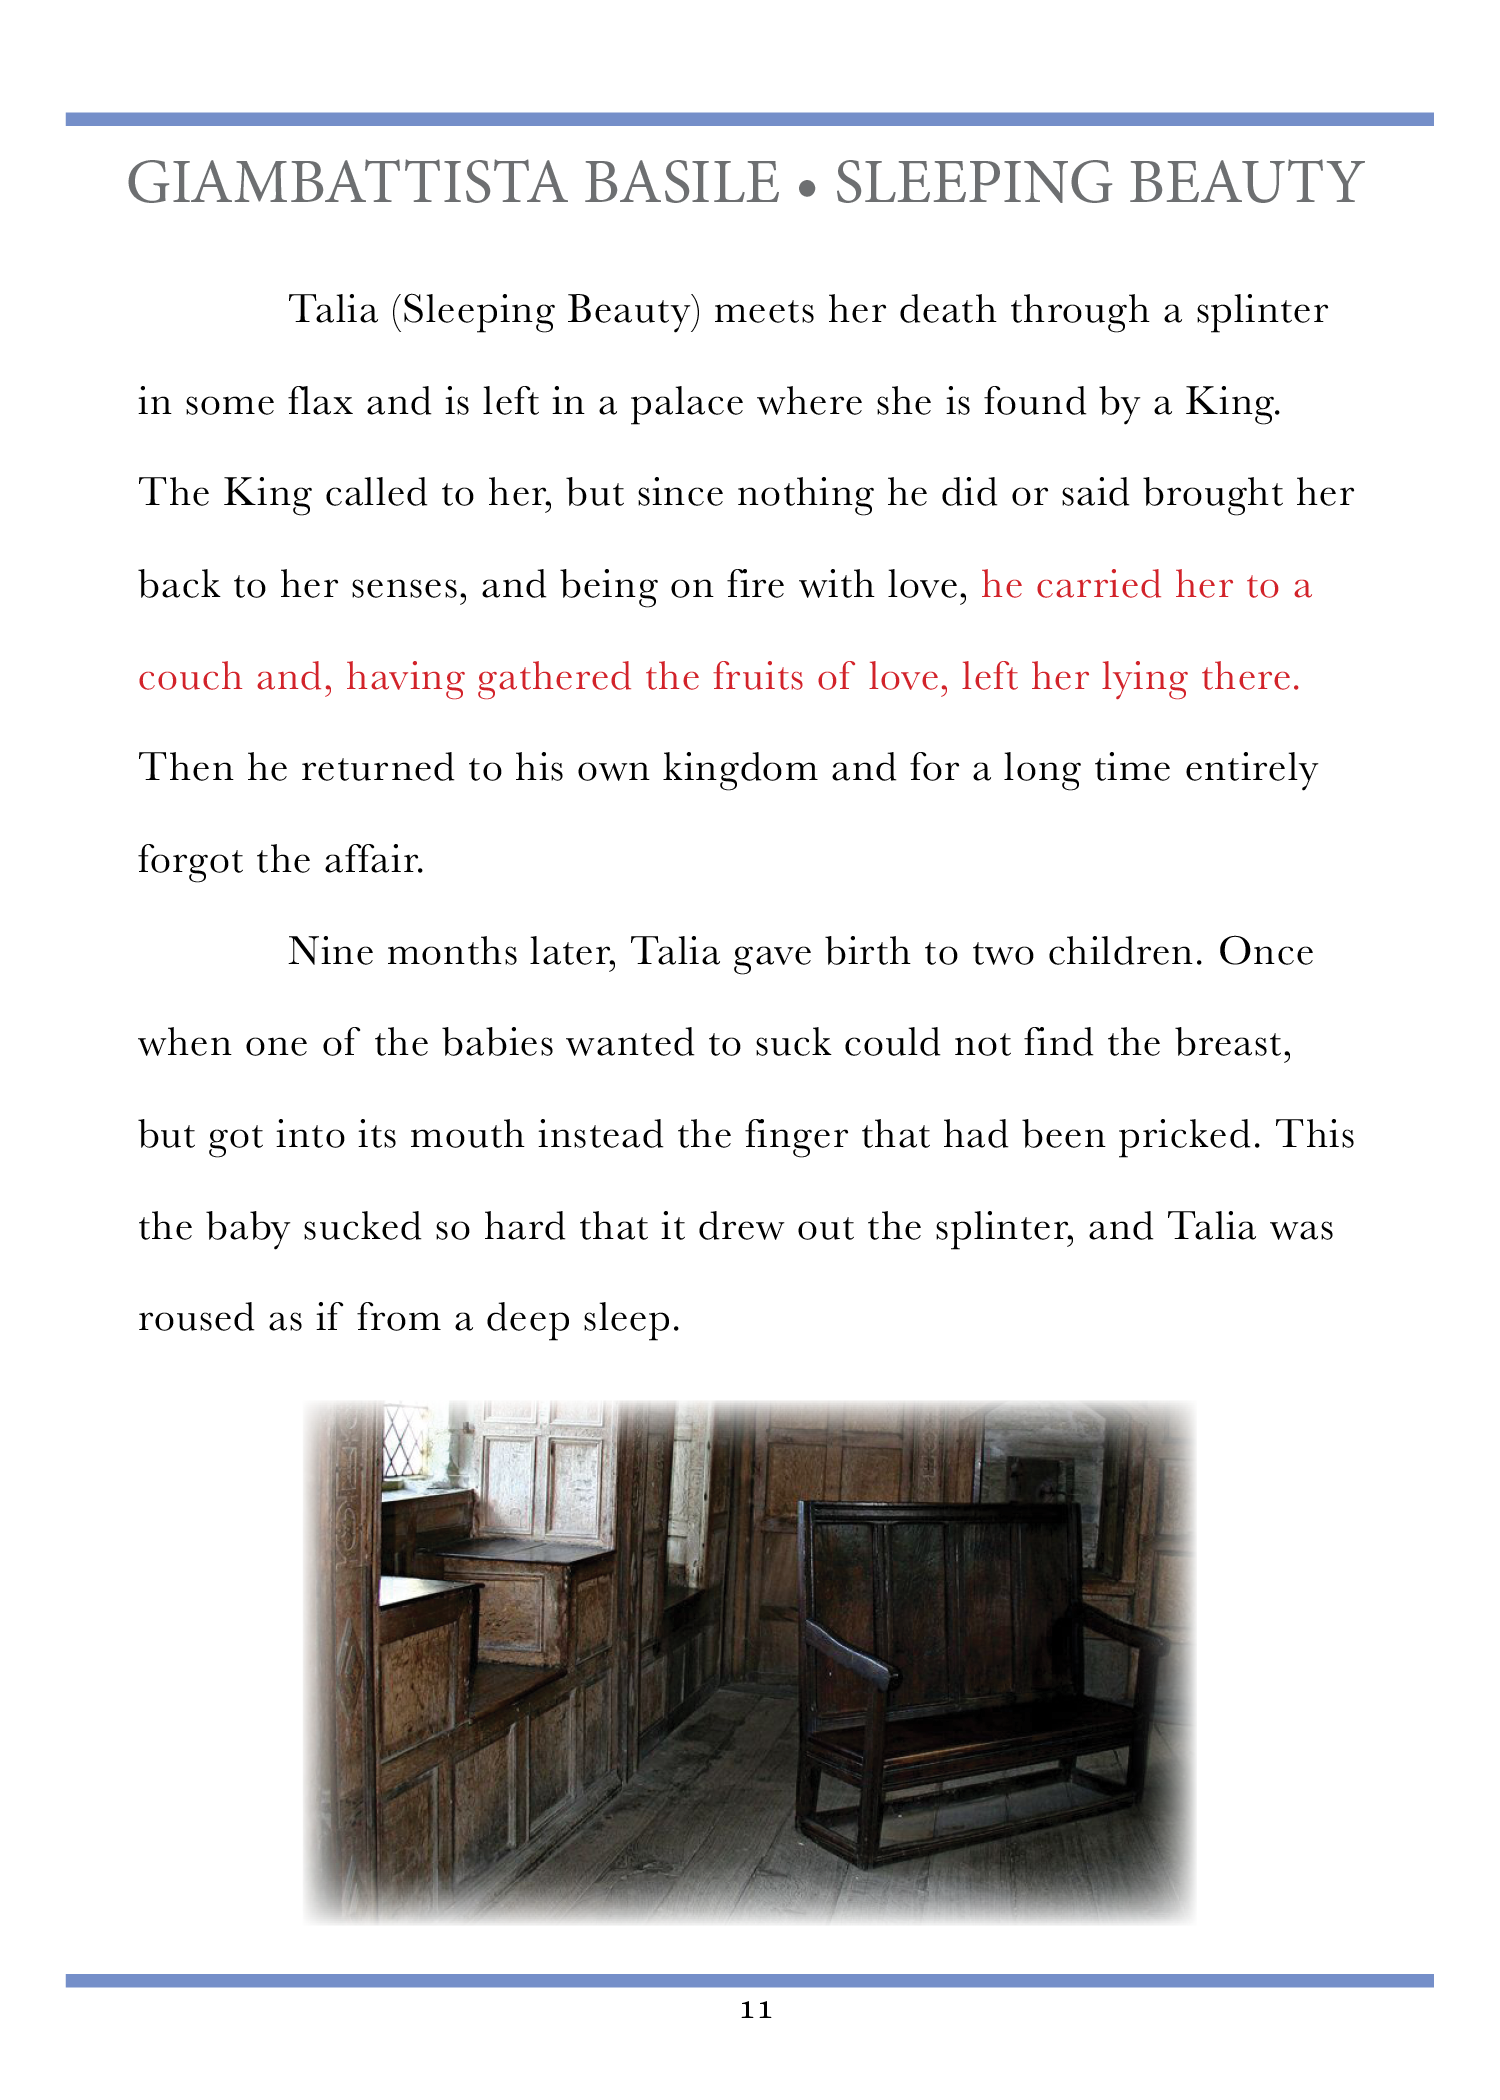 im_com_inside book pages12.png